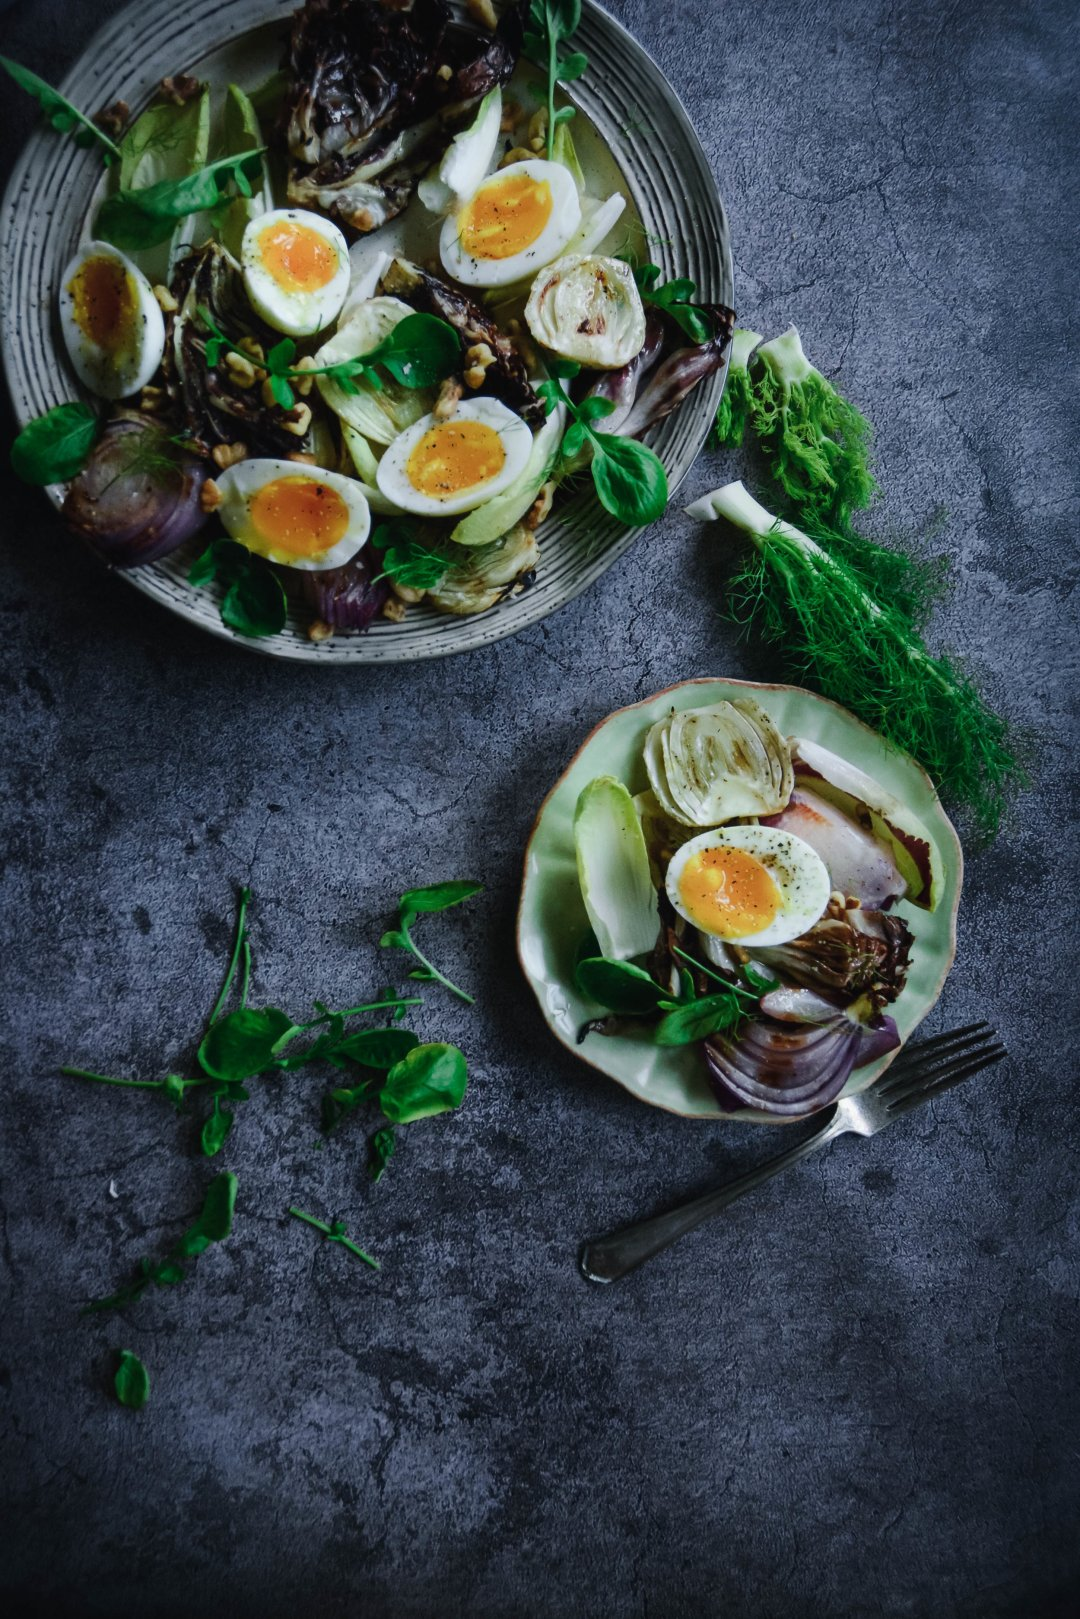 Radicchio salad on two plates topped with eggs